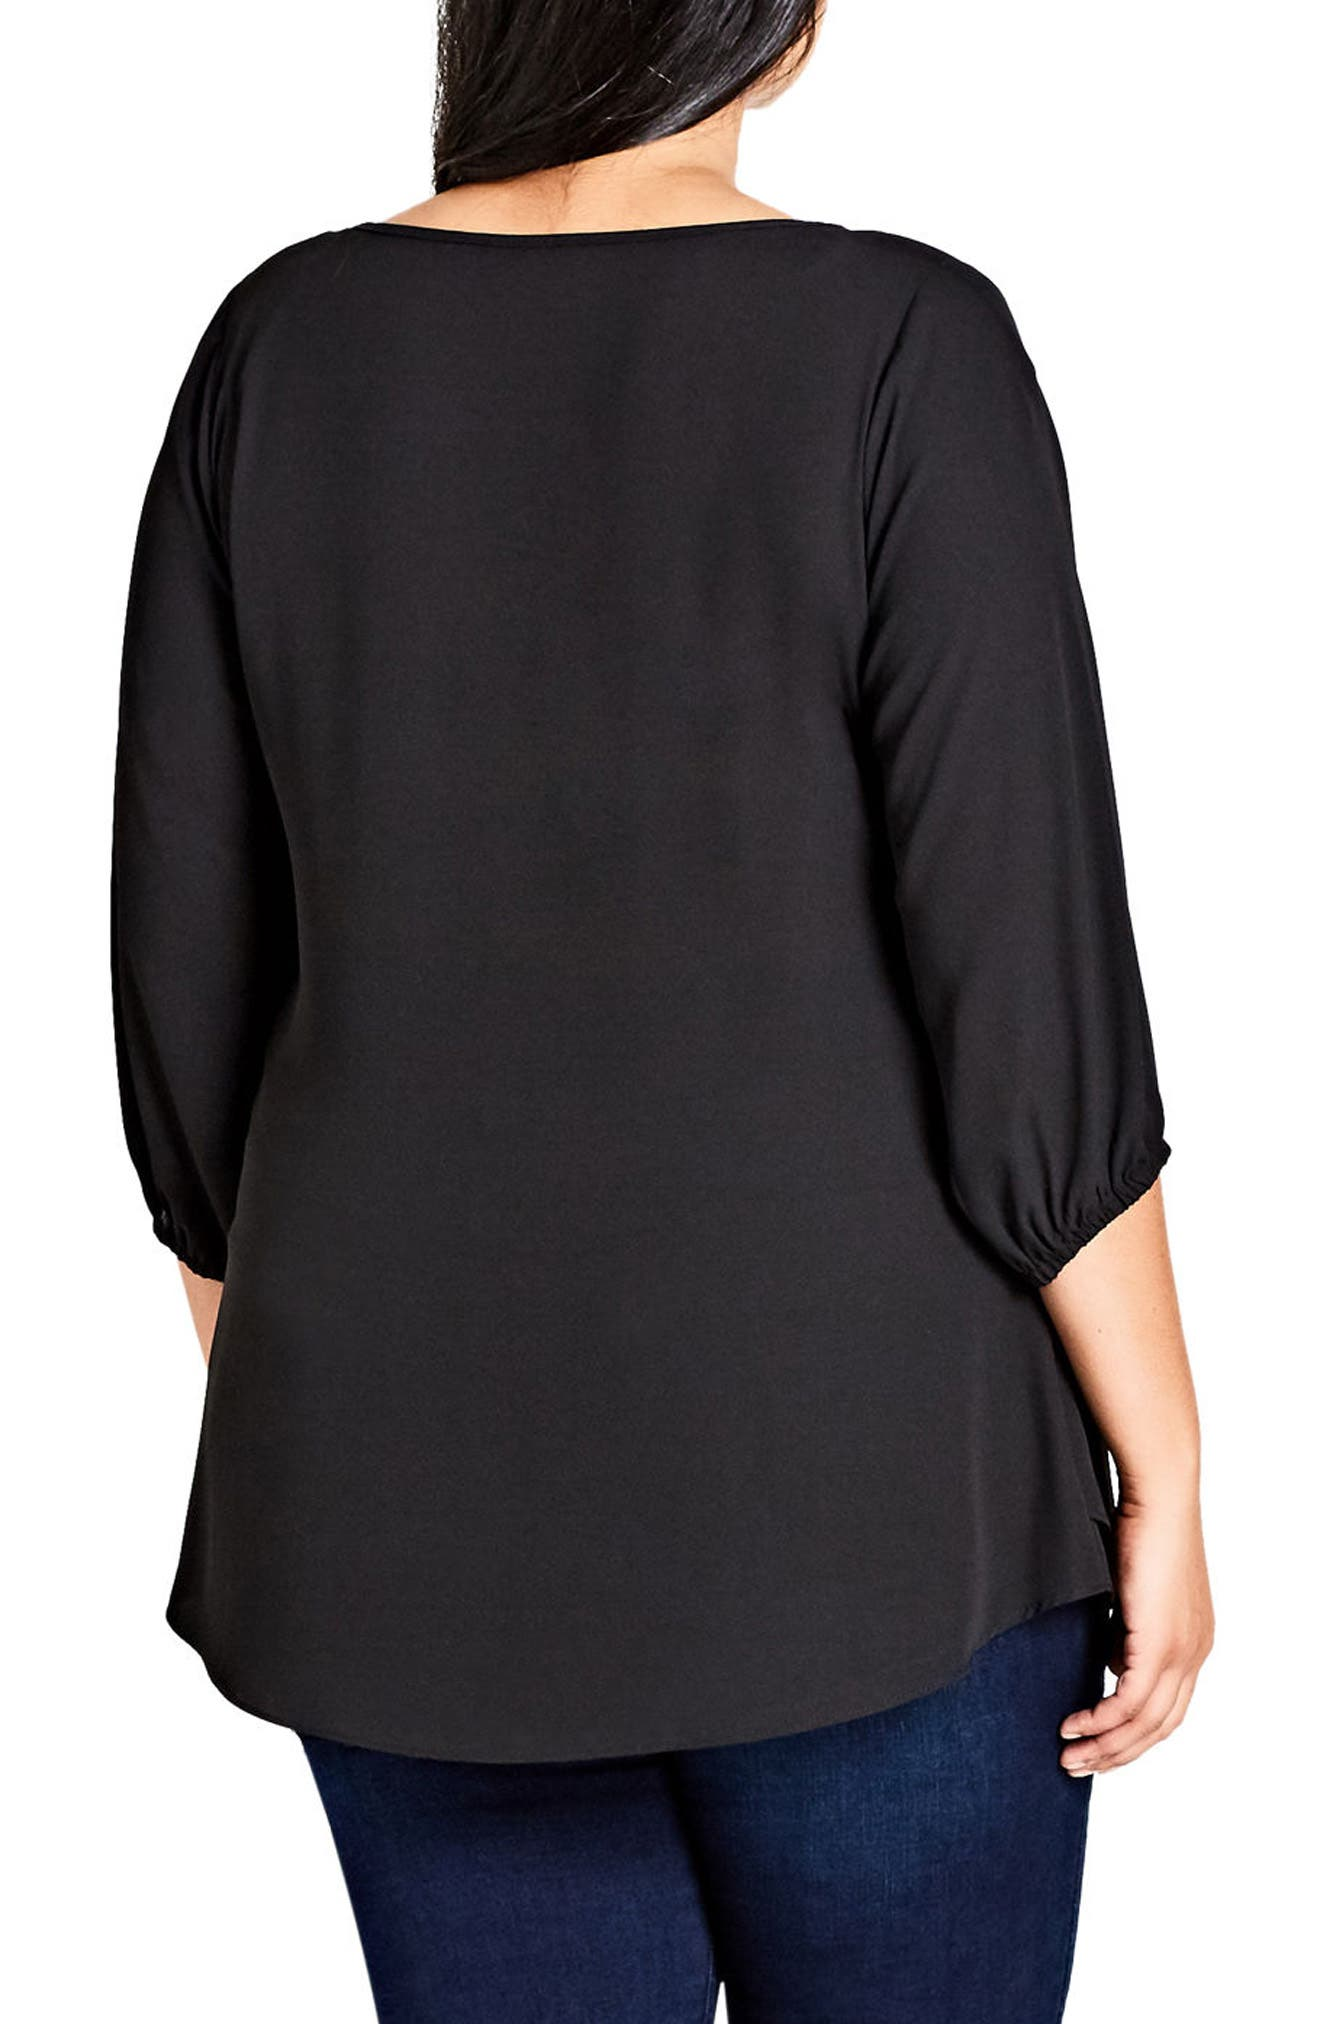 CITY CHIC, Sexy Fling Zip Front Top, Alternate thumbnail 2, color, 001